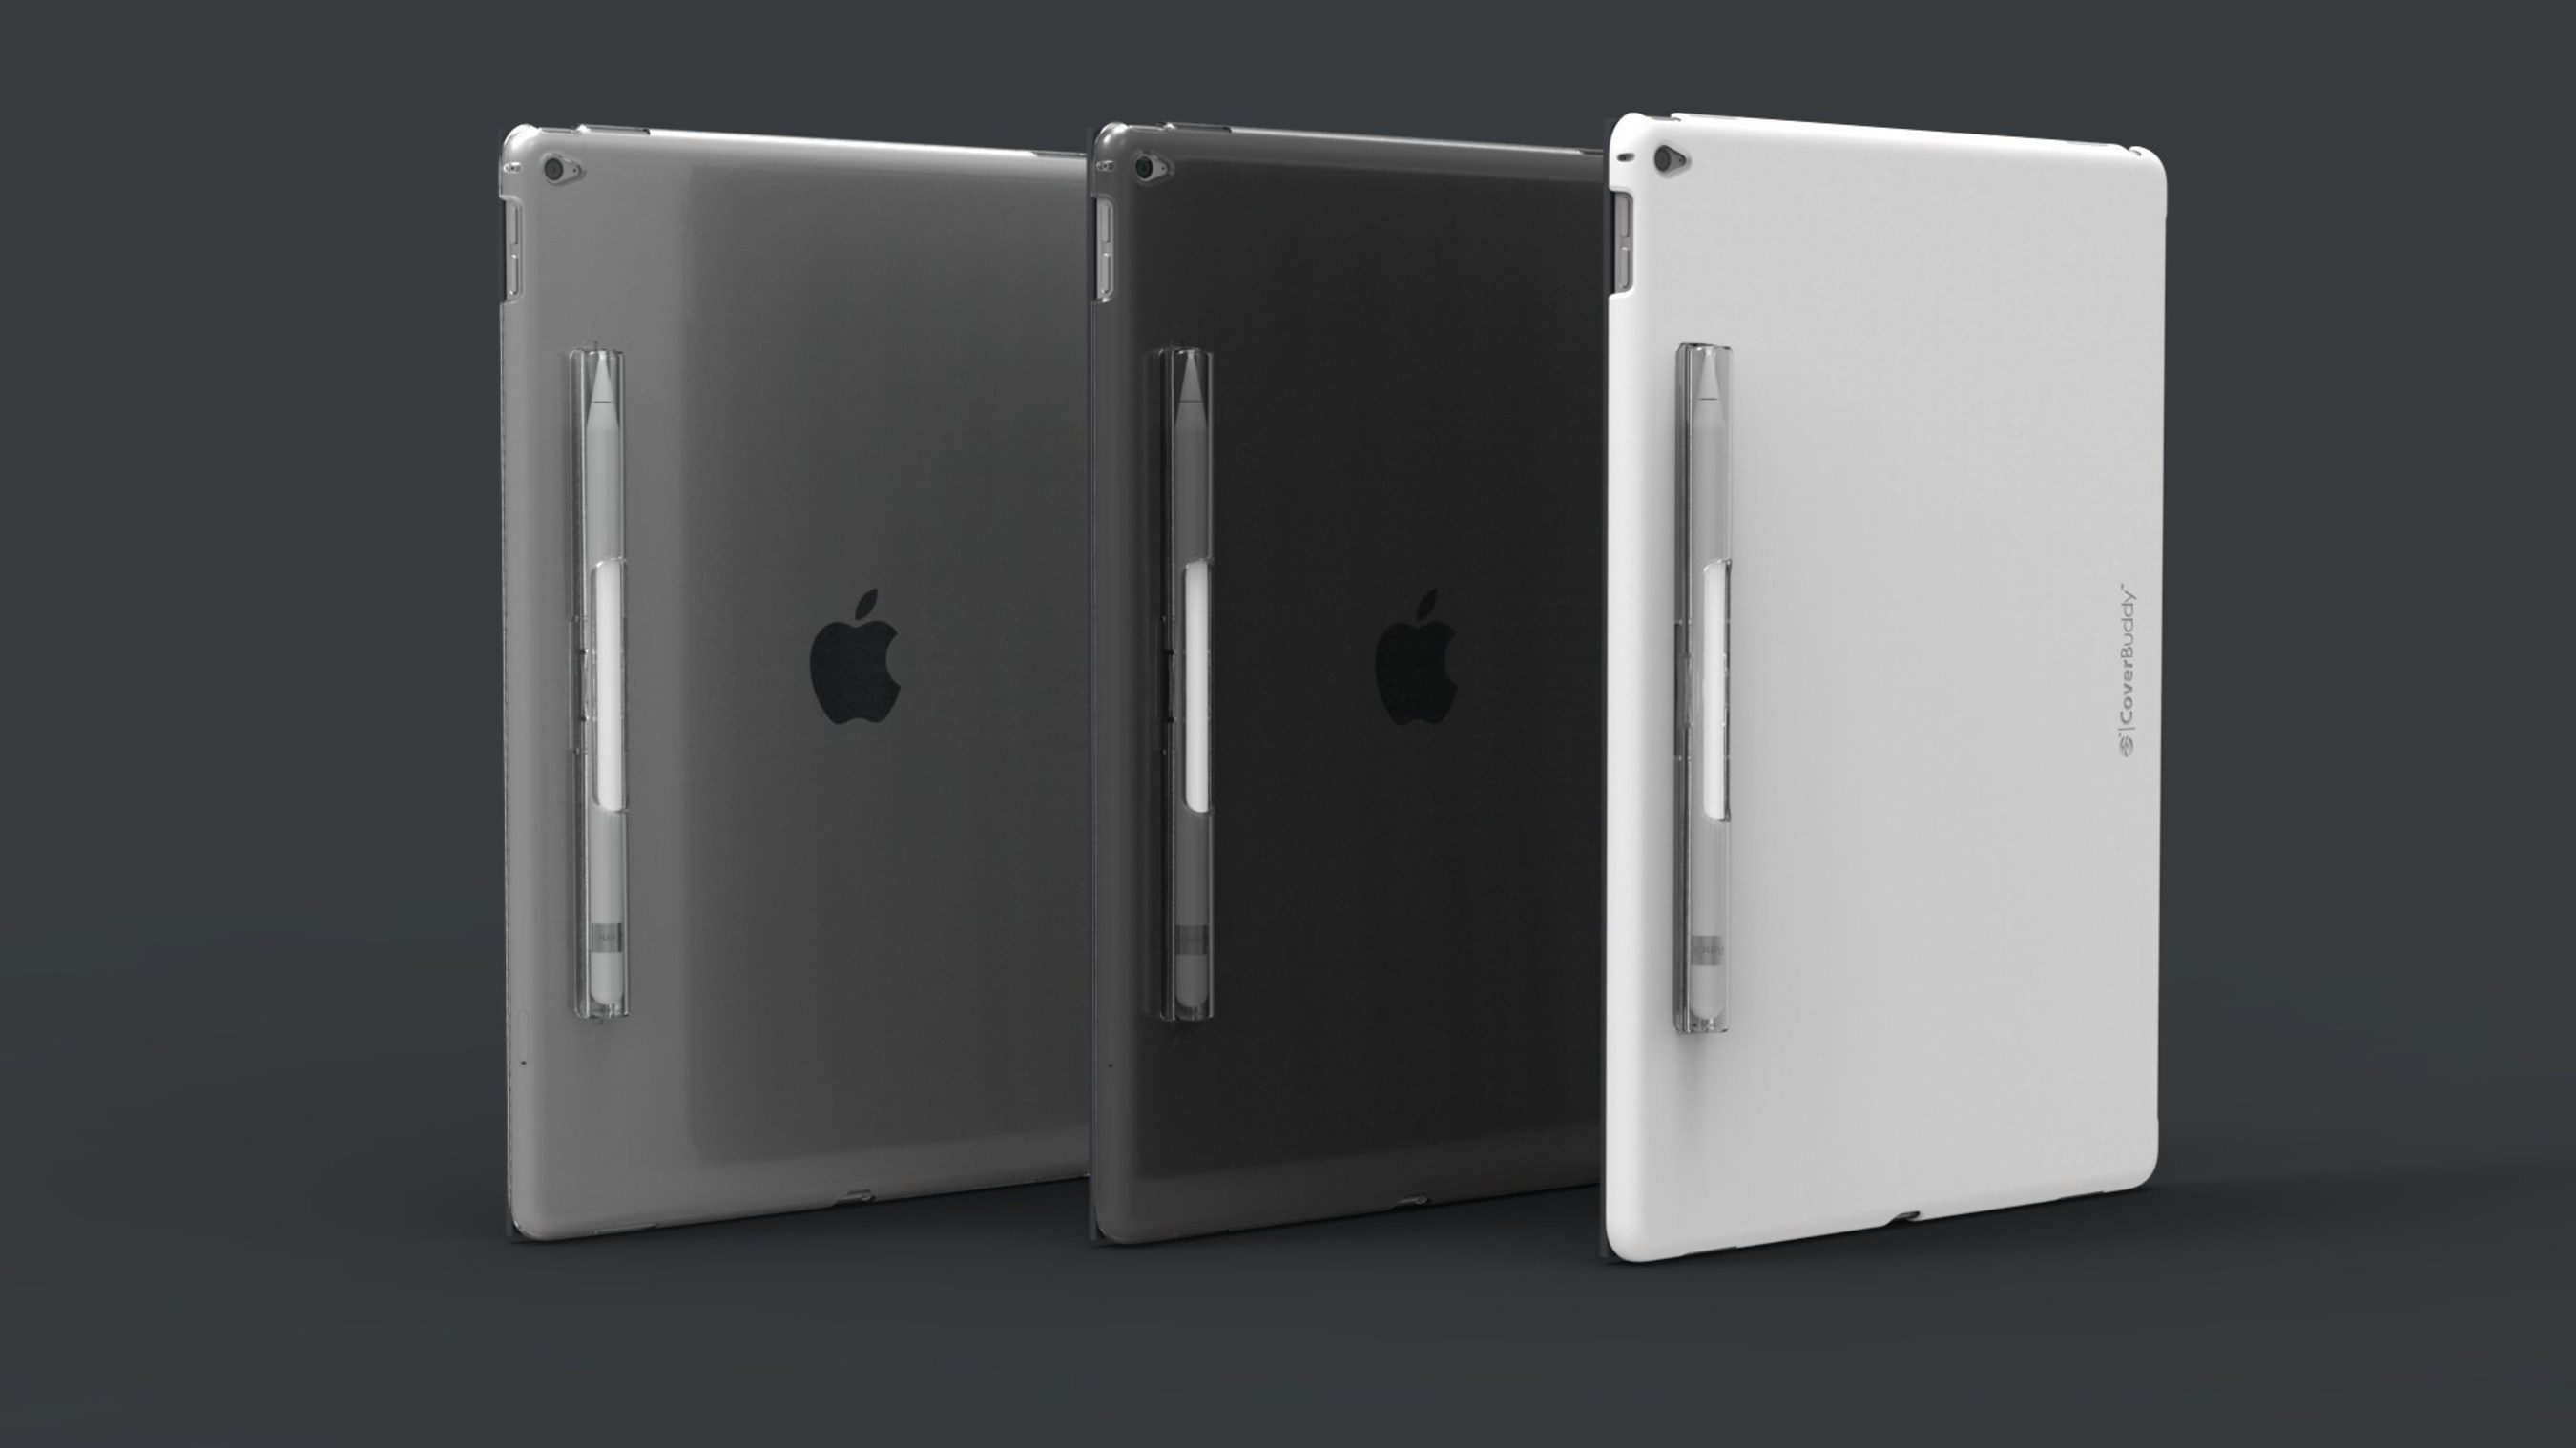 SwitchEasy Introduces CoverBuddy, the World's First Sketch Case for iPad Pro